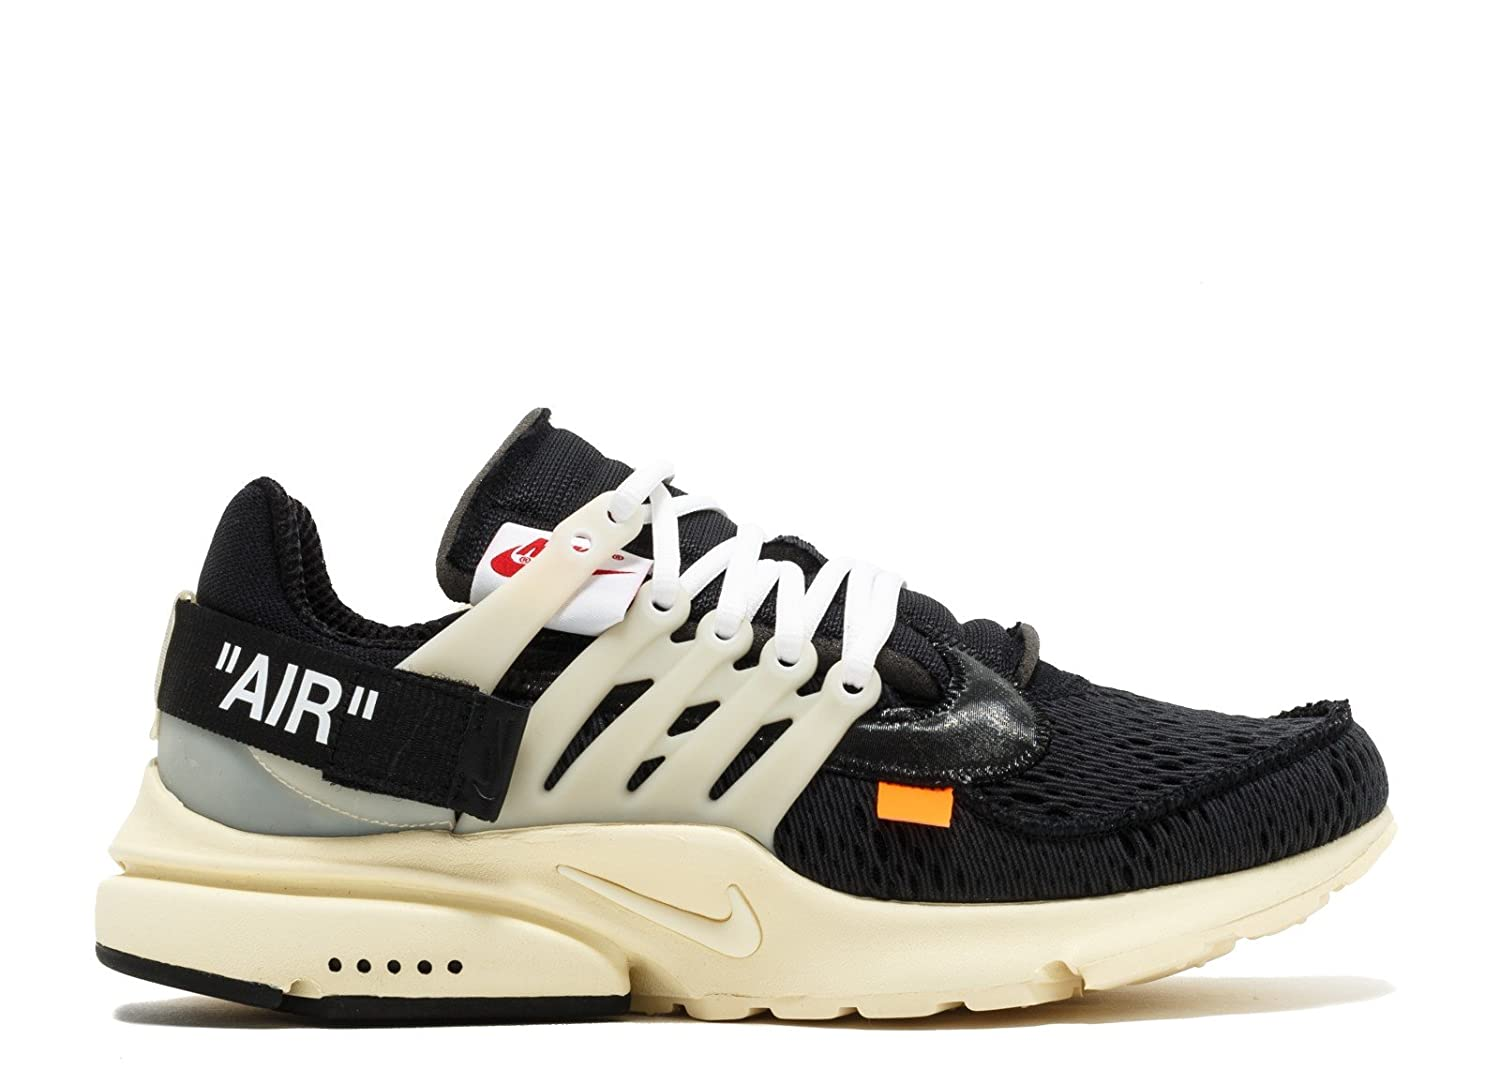 BestVIP The 10 Air Presto Off White aa3830 001 Black Muslin B07BRXDS4X Mens:11D(M)US=10UK=45EU|2018 New Fashion Shoes